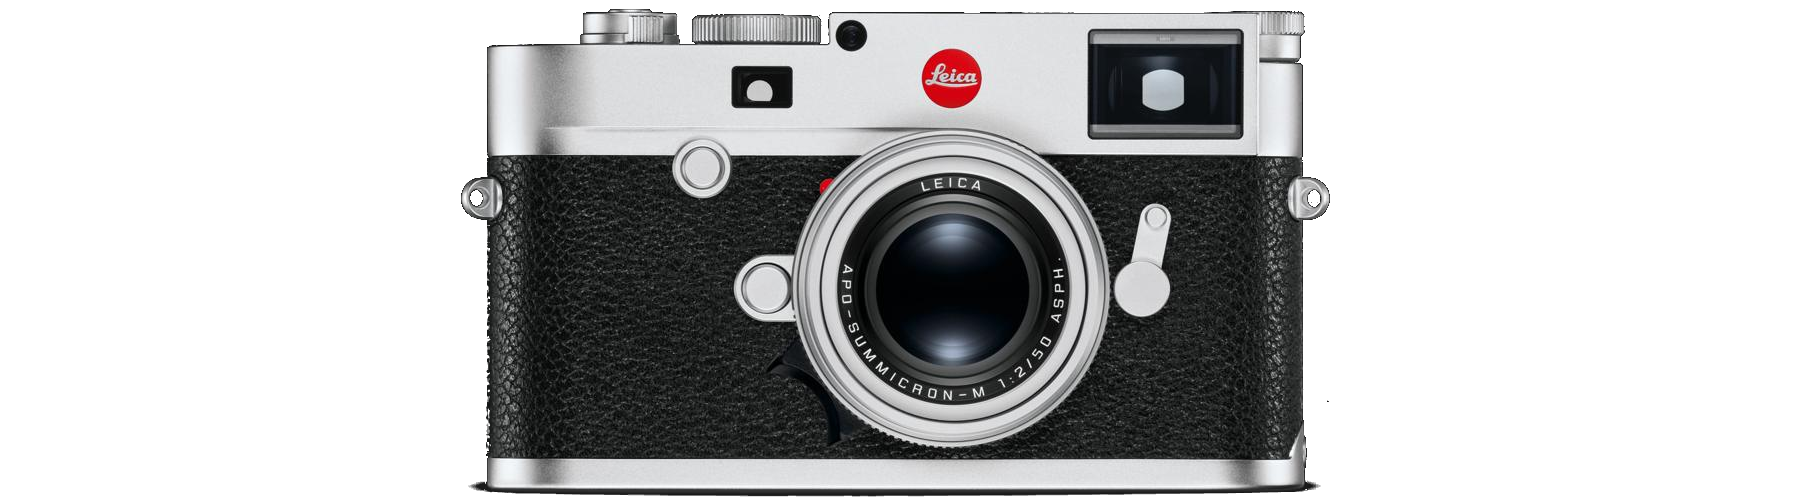 Leica M10 chrome product shot